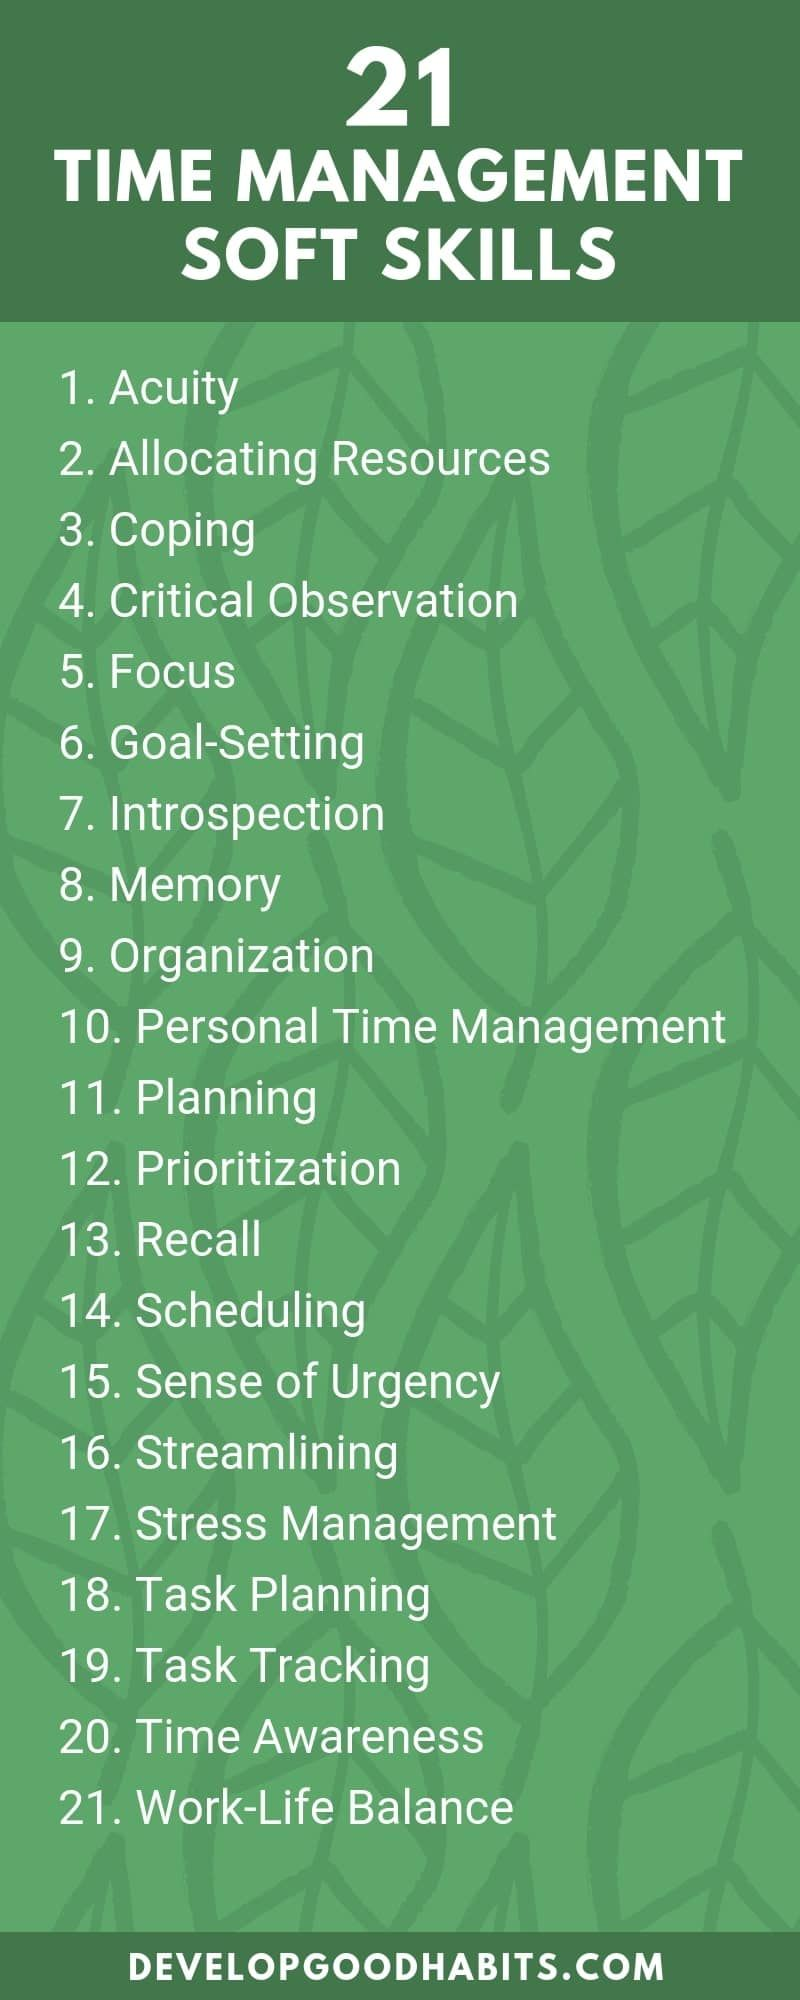 135 Soft Skills List to Stand Out on a Resume or Job